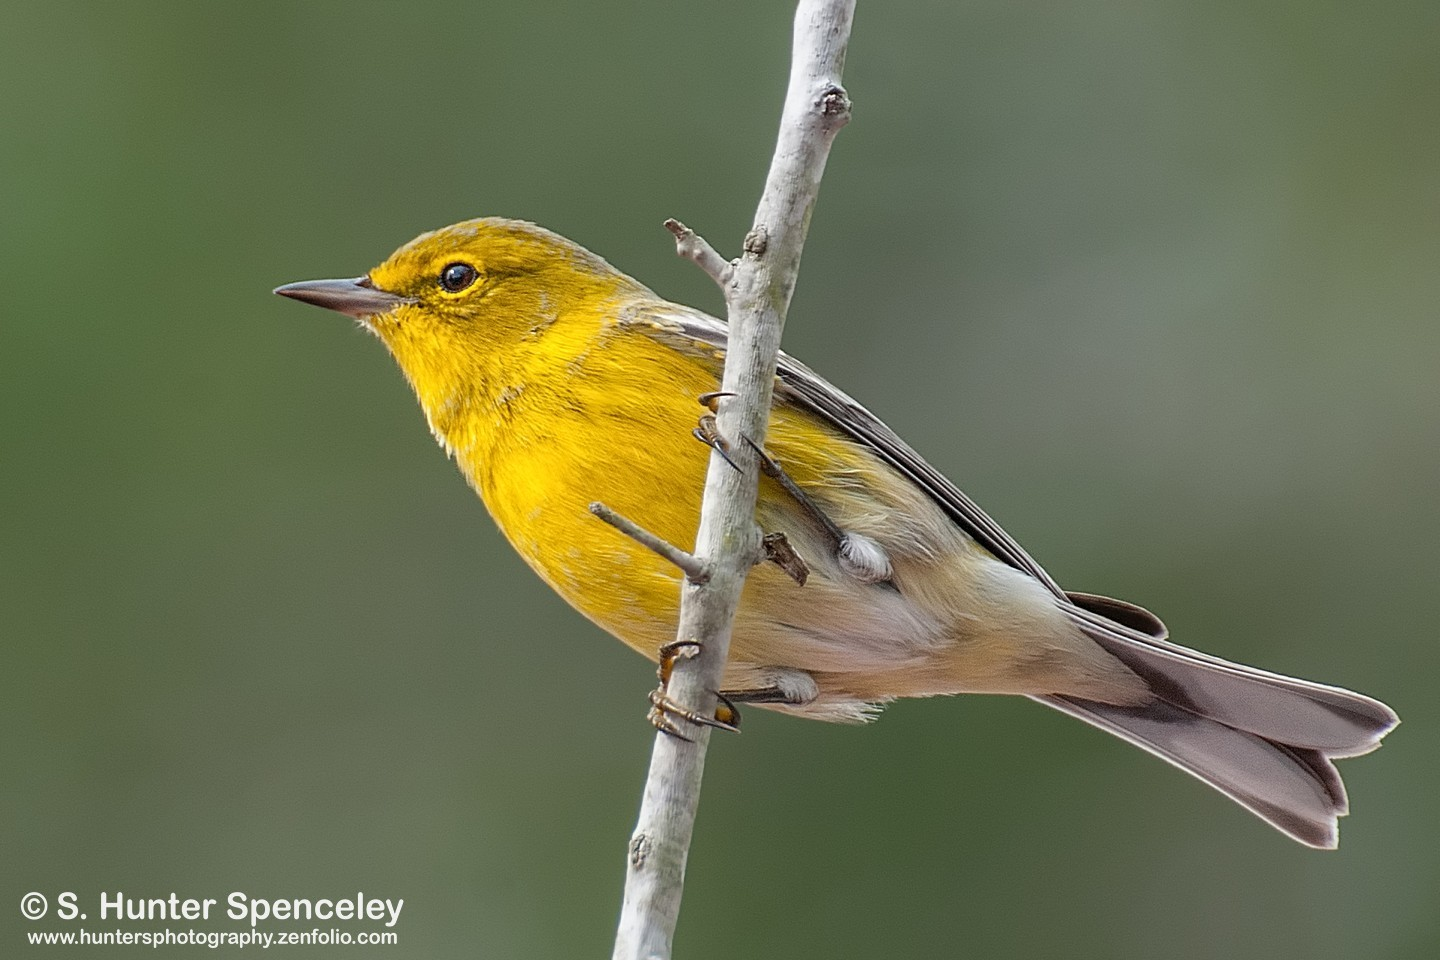 eBird maps show it's time to look for Pine Warbler